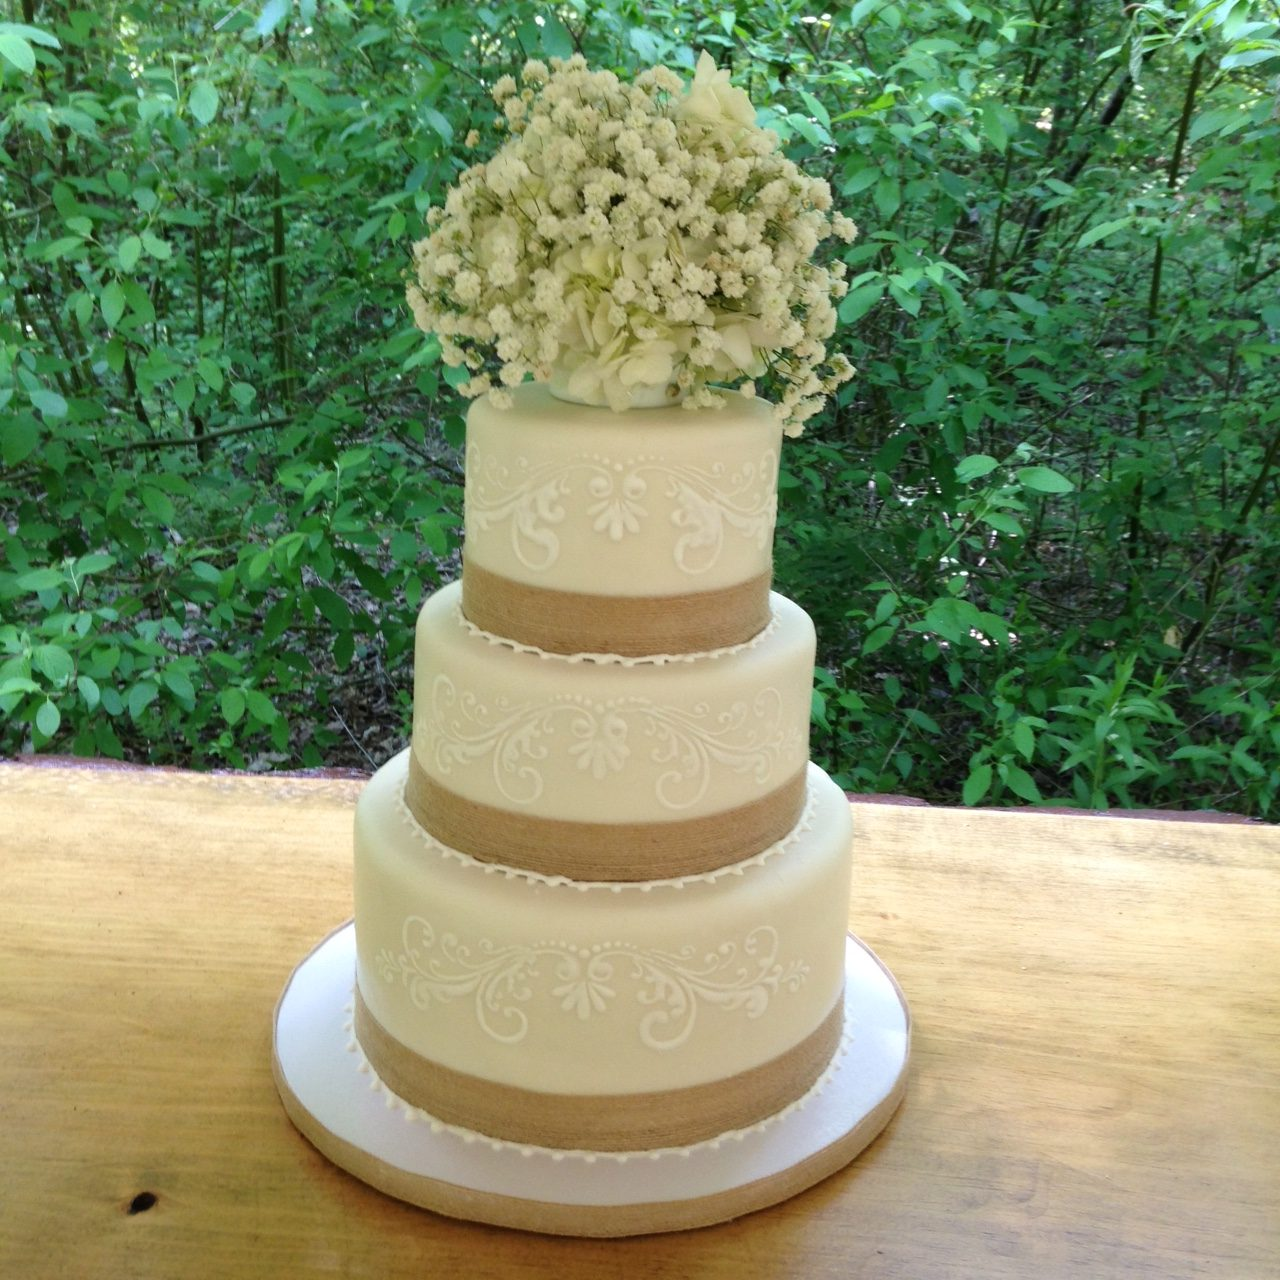 Wedding Cake with burlap